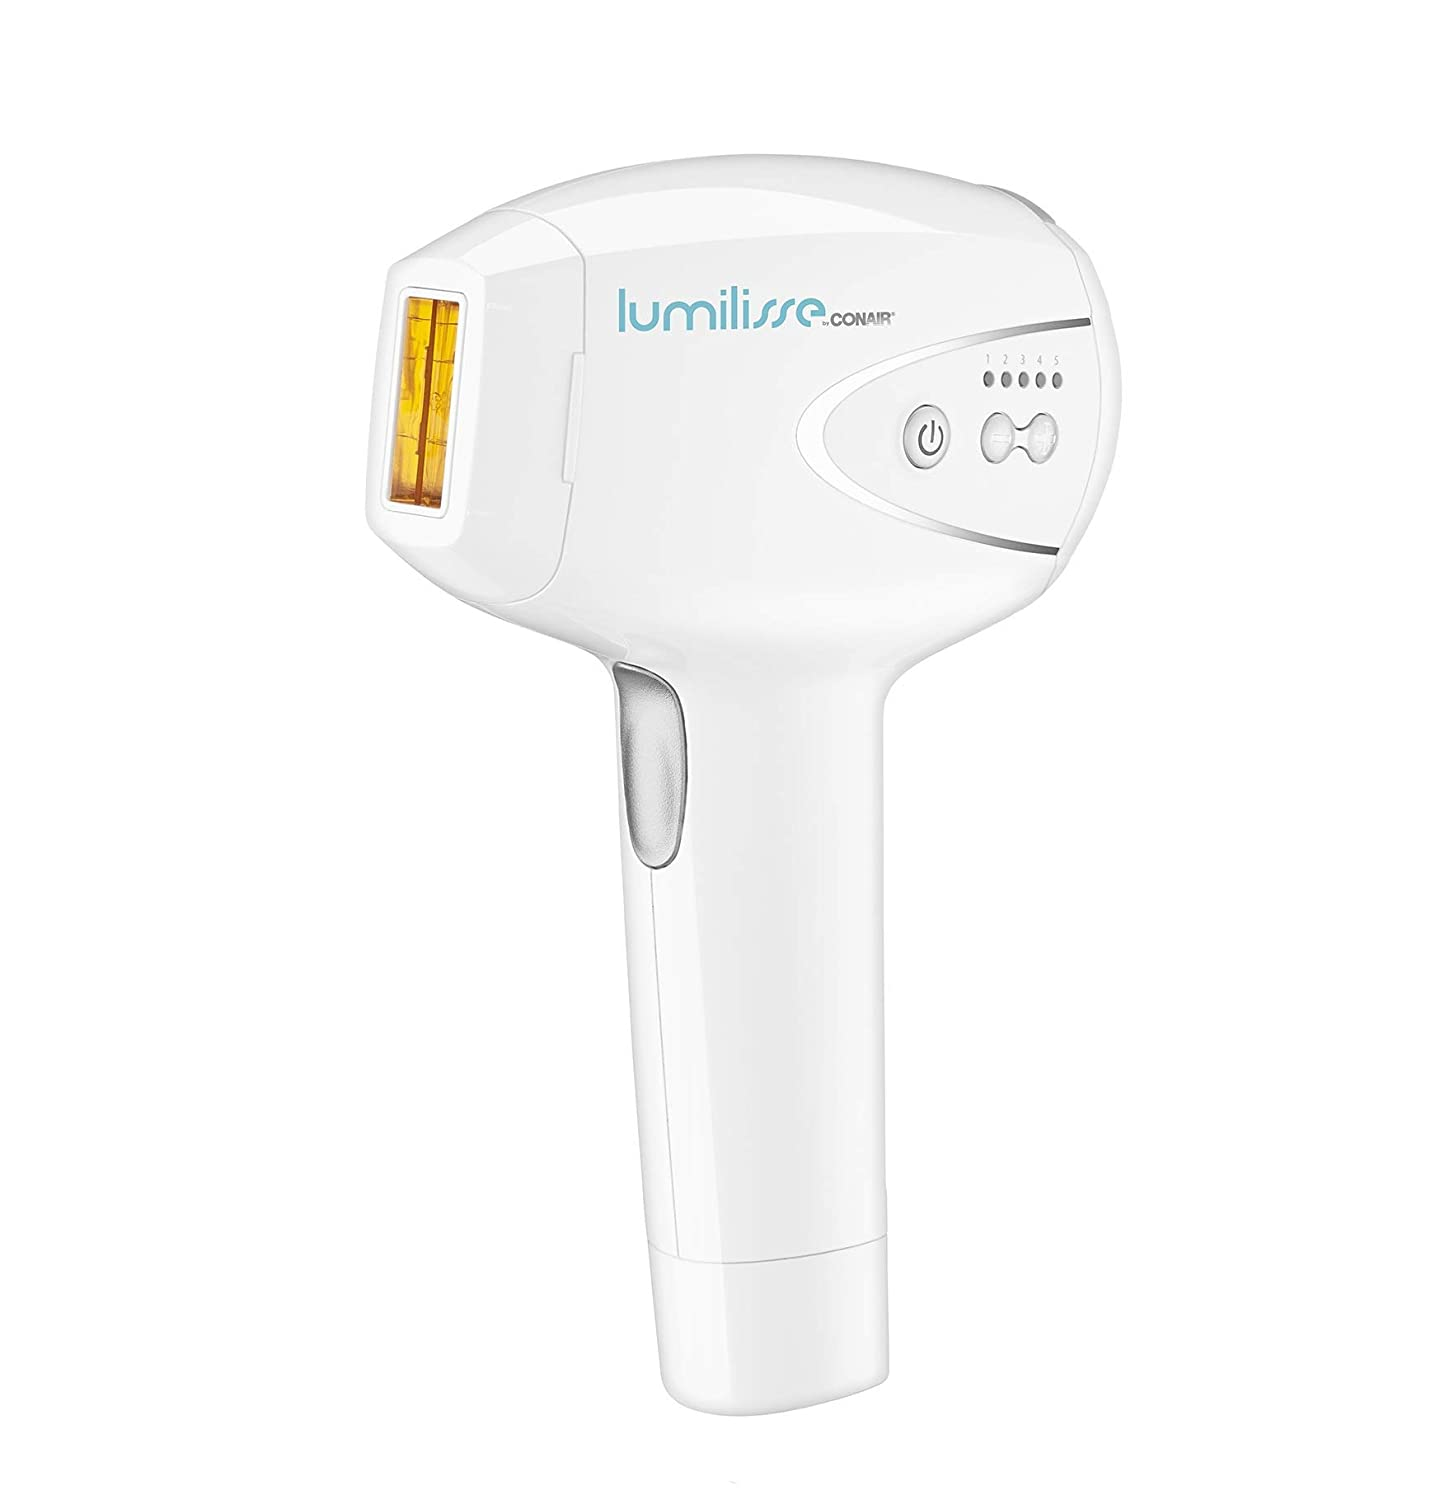 Conair Lumilisse Hair Removal Device with Intense Pulsed Light Technology